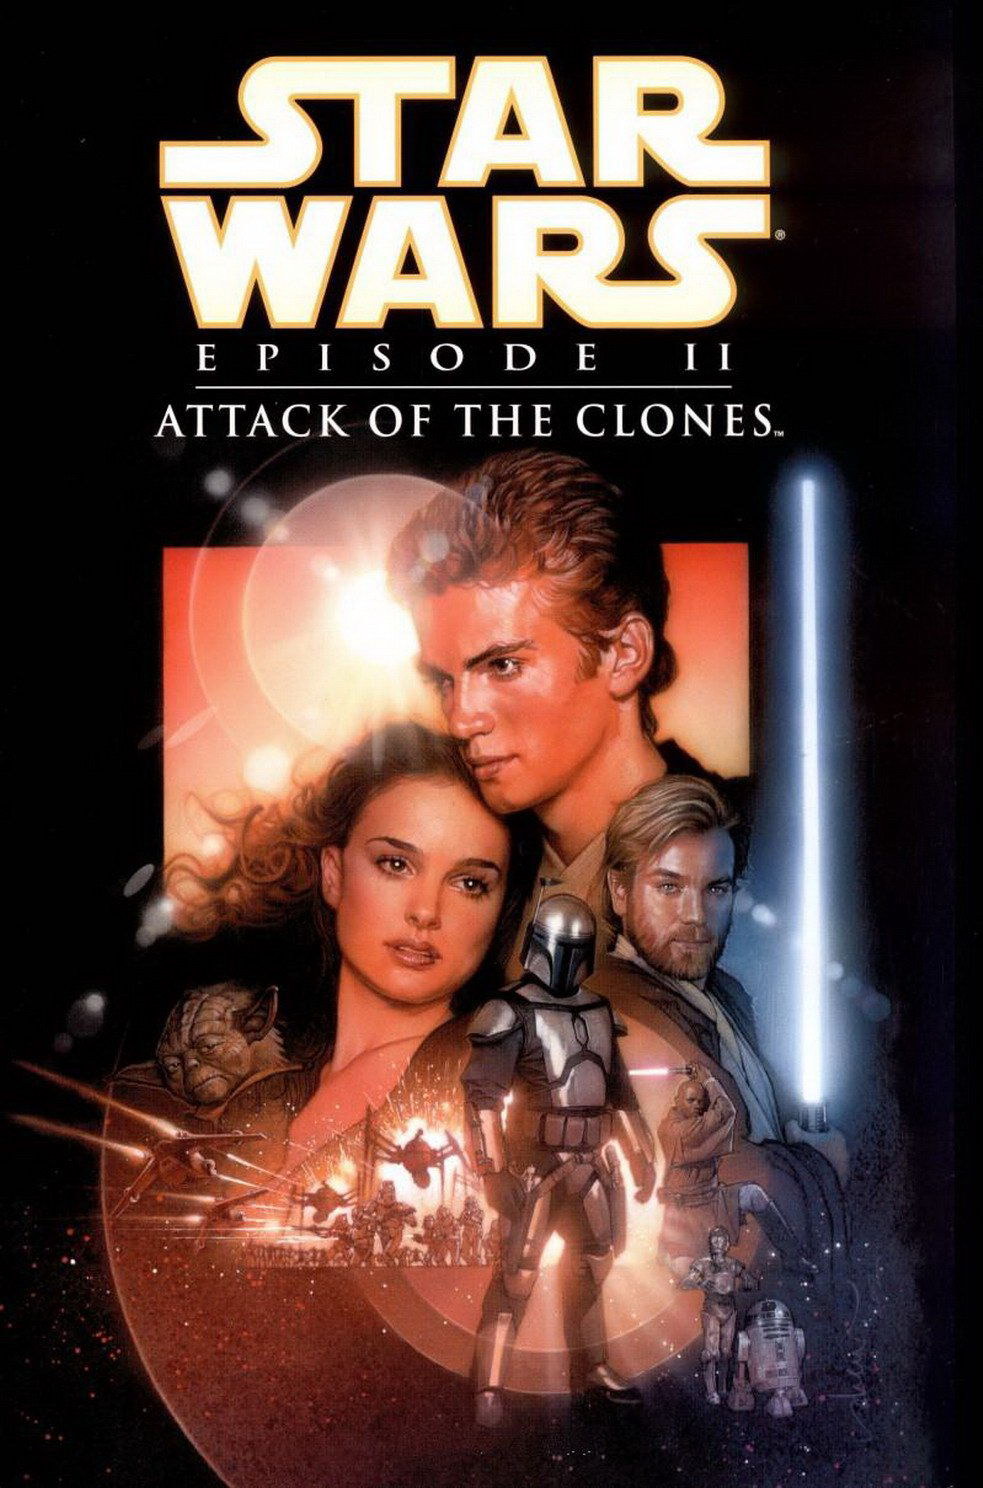 Episode 2, Attack of the Clones